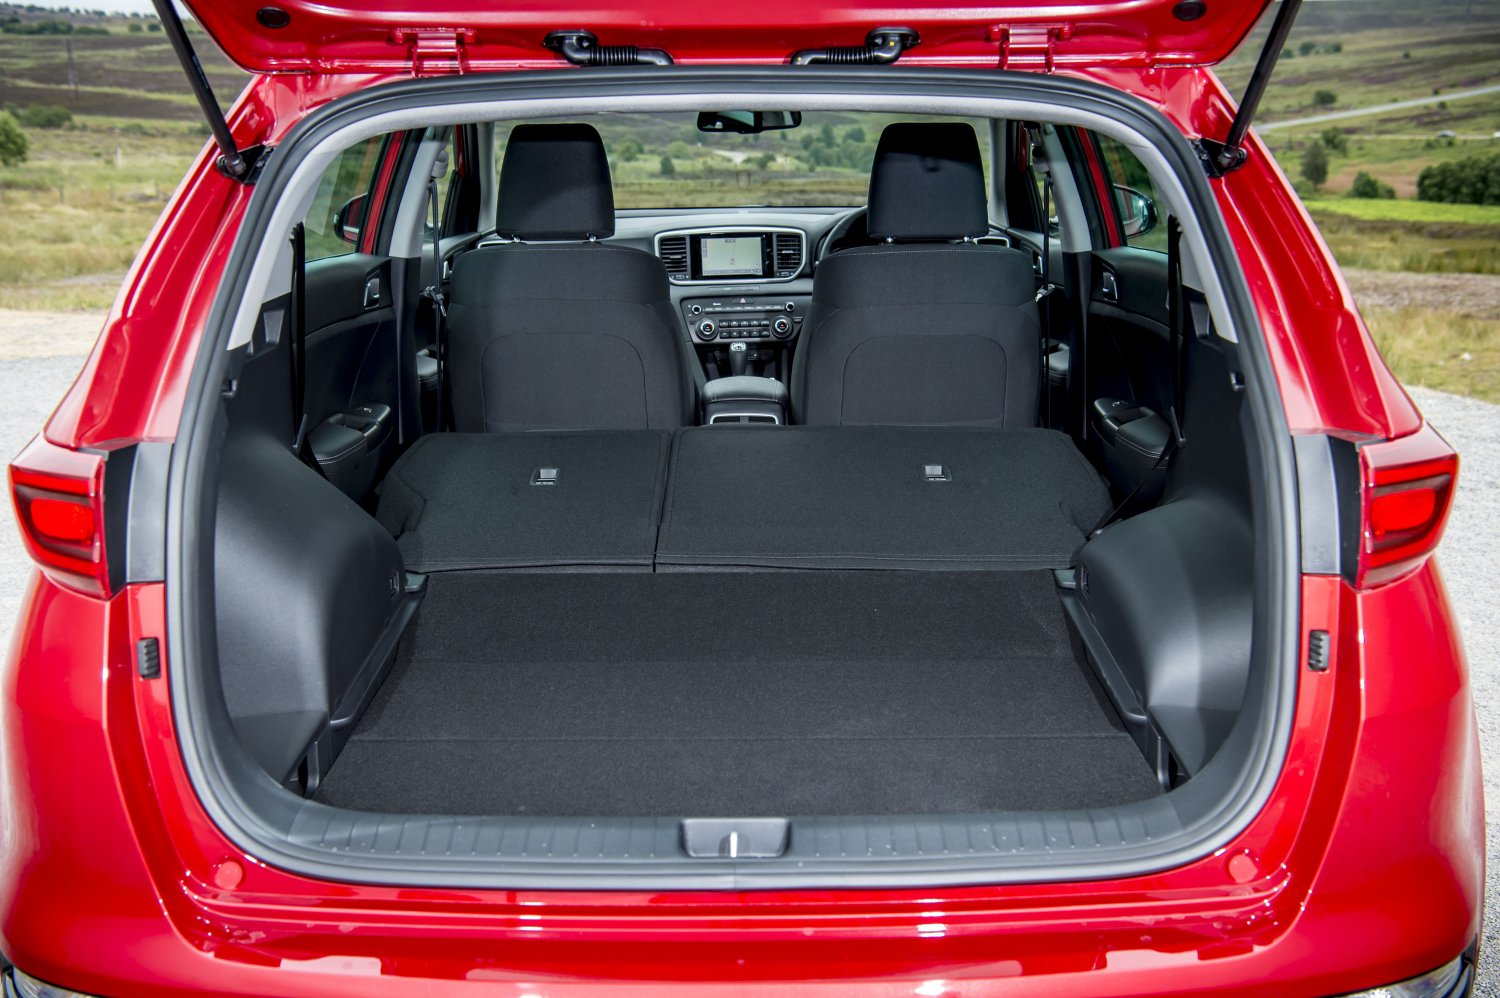 KIA Sportage boot luggage area